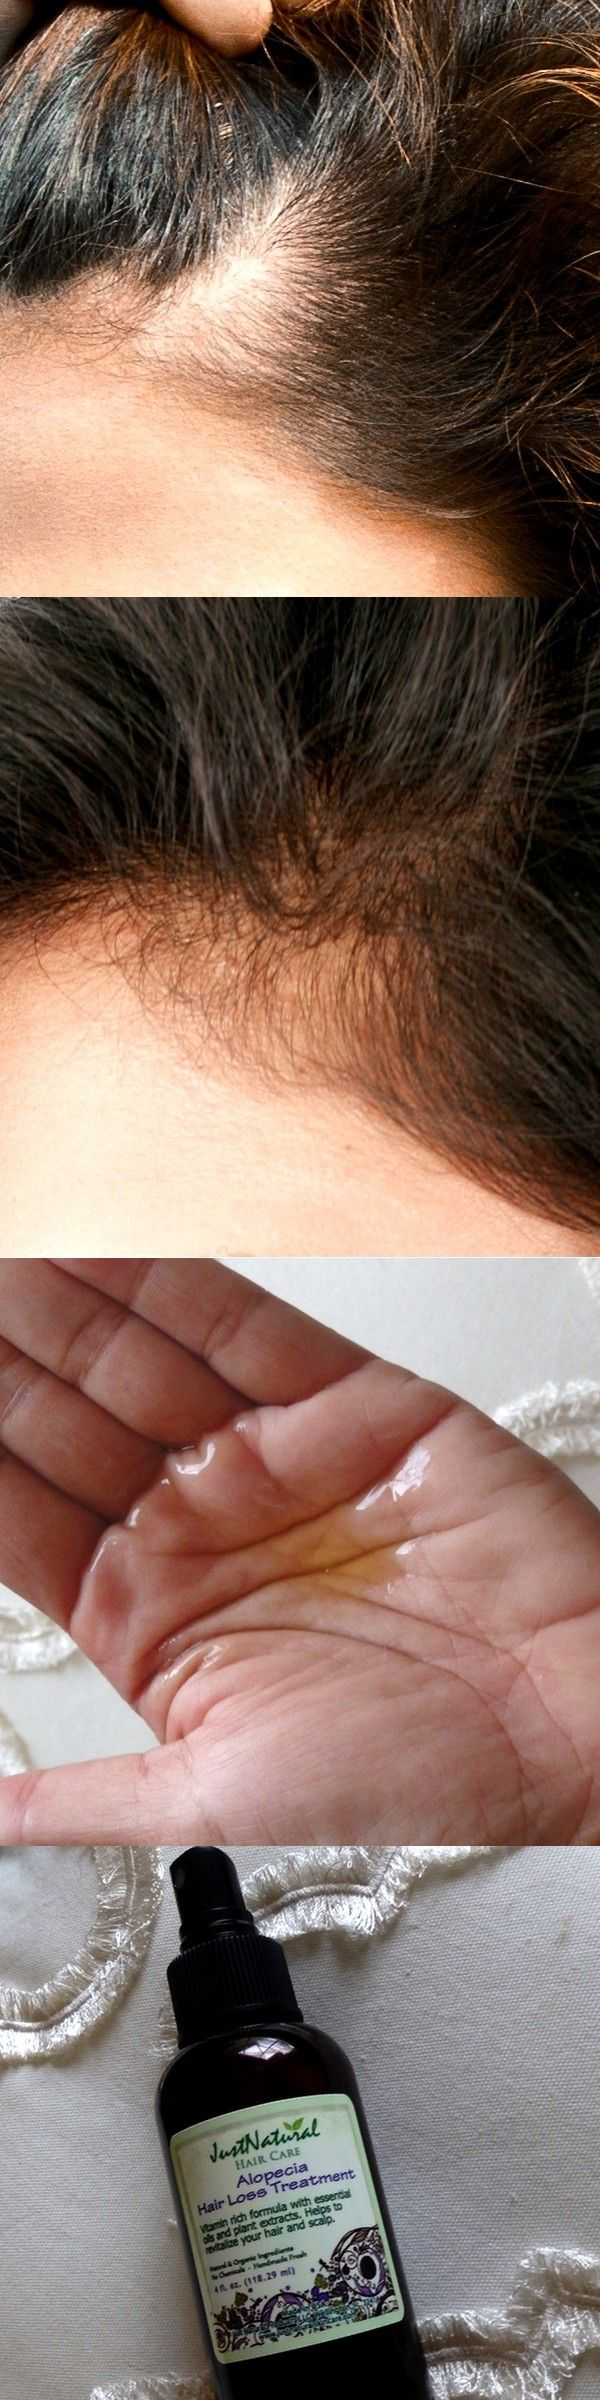 I have been fighting with alopecia for almost 3 years now and am only 27 years old. I have tried everything including steroids and biotin without much improvement. Out of desperation I decided to try this and I noticed very small results after about one month. It's been three months since I started and my spots are almost filled in! I use a tiny amount and use my fingers to apply it to my scalp. I am so thankful that I found this product.